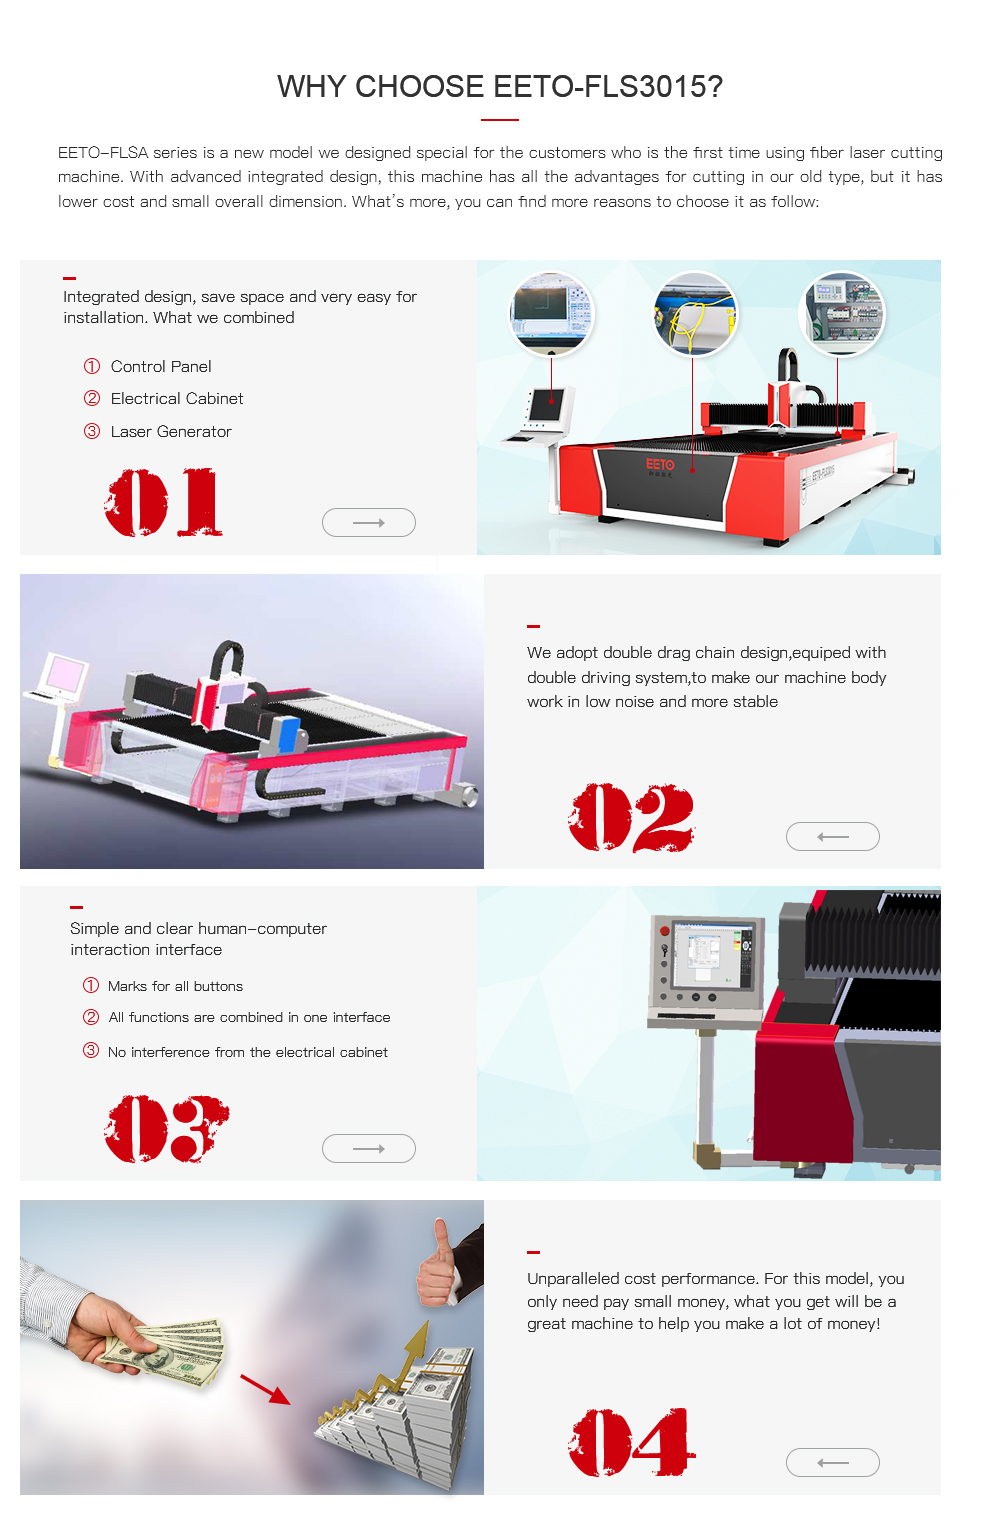 Economical Fiber Laser Cutting Machine Wuhan Eeto Low Cost Noise Generator Fls Series